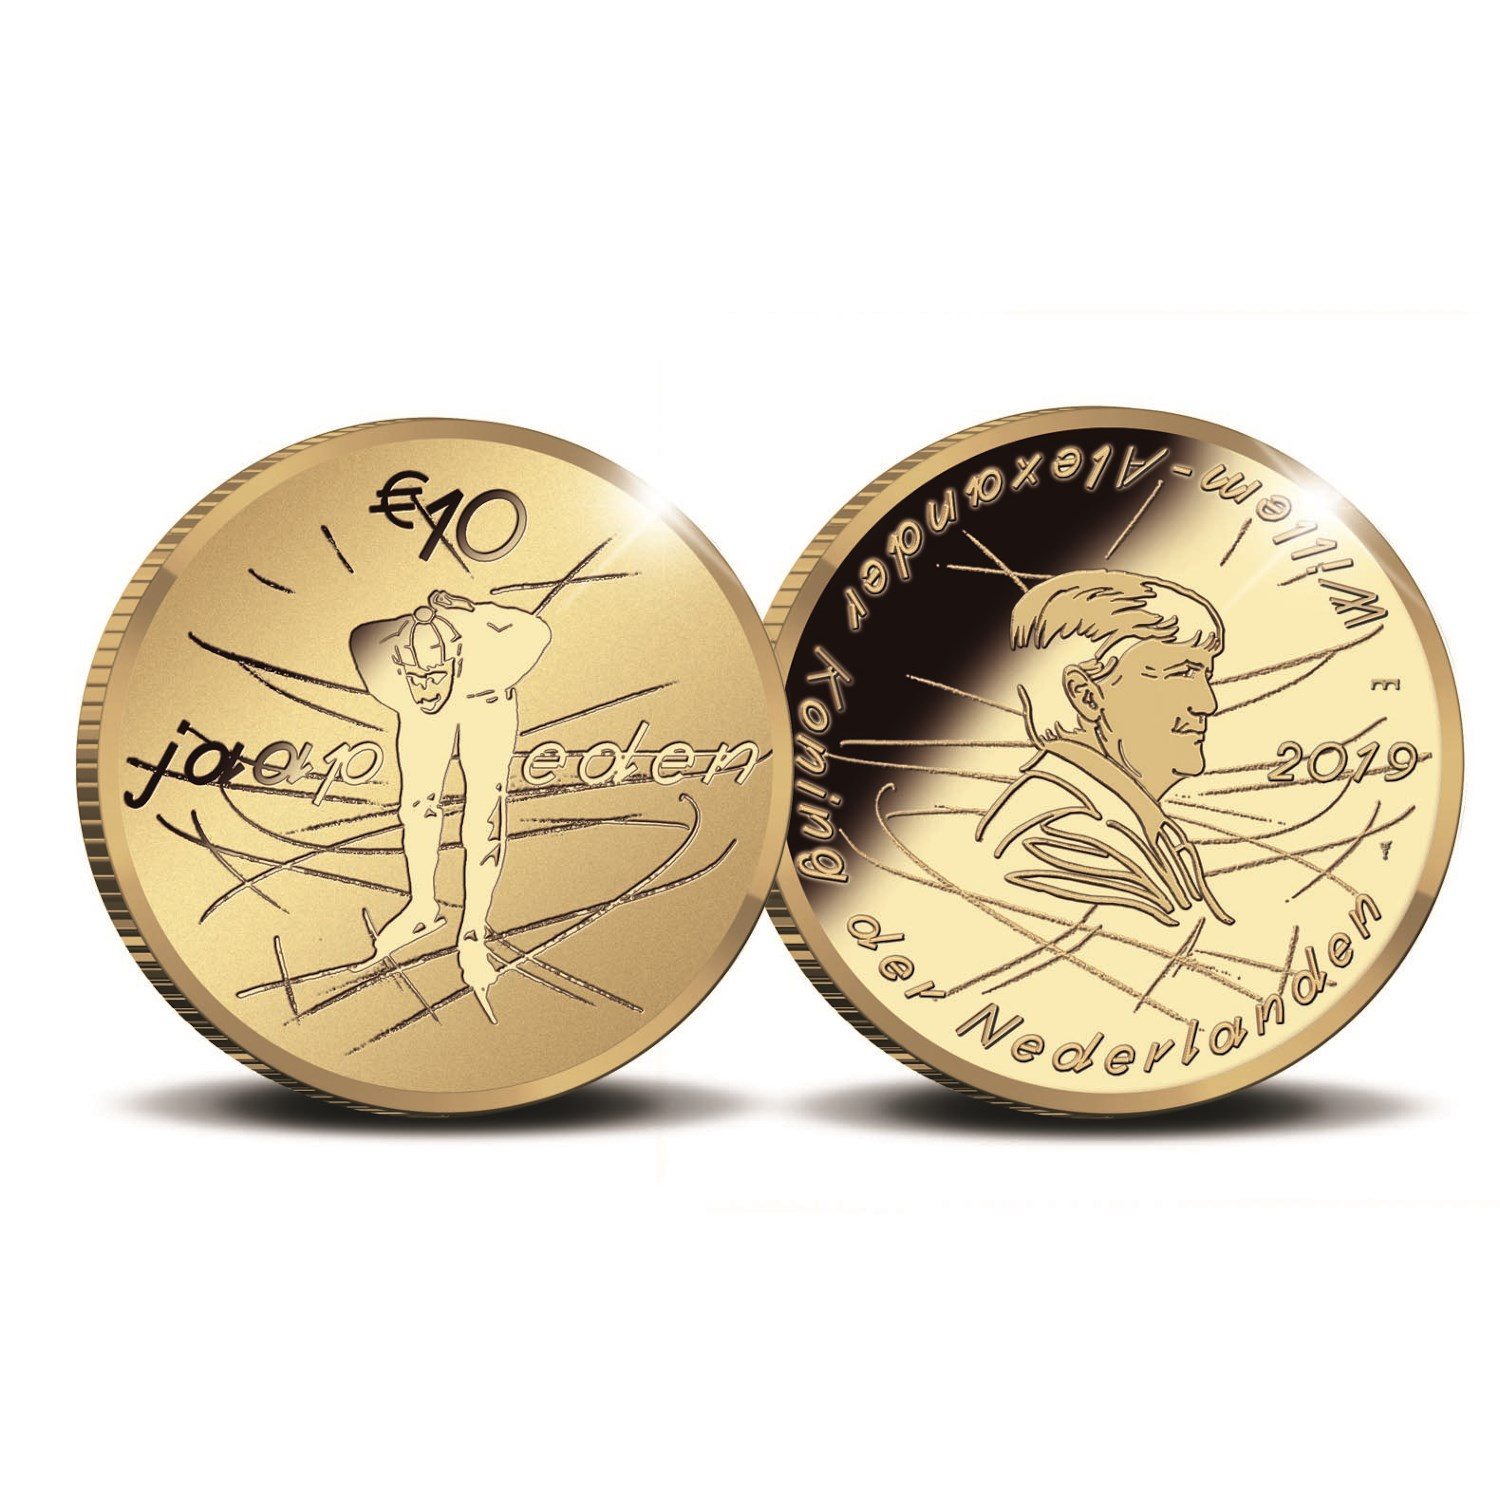 2019 Jaap EDEN commemorative coins from the Netherlands